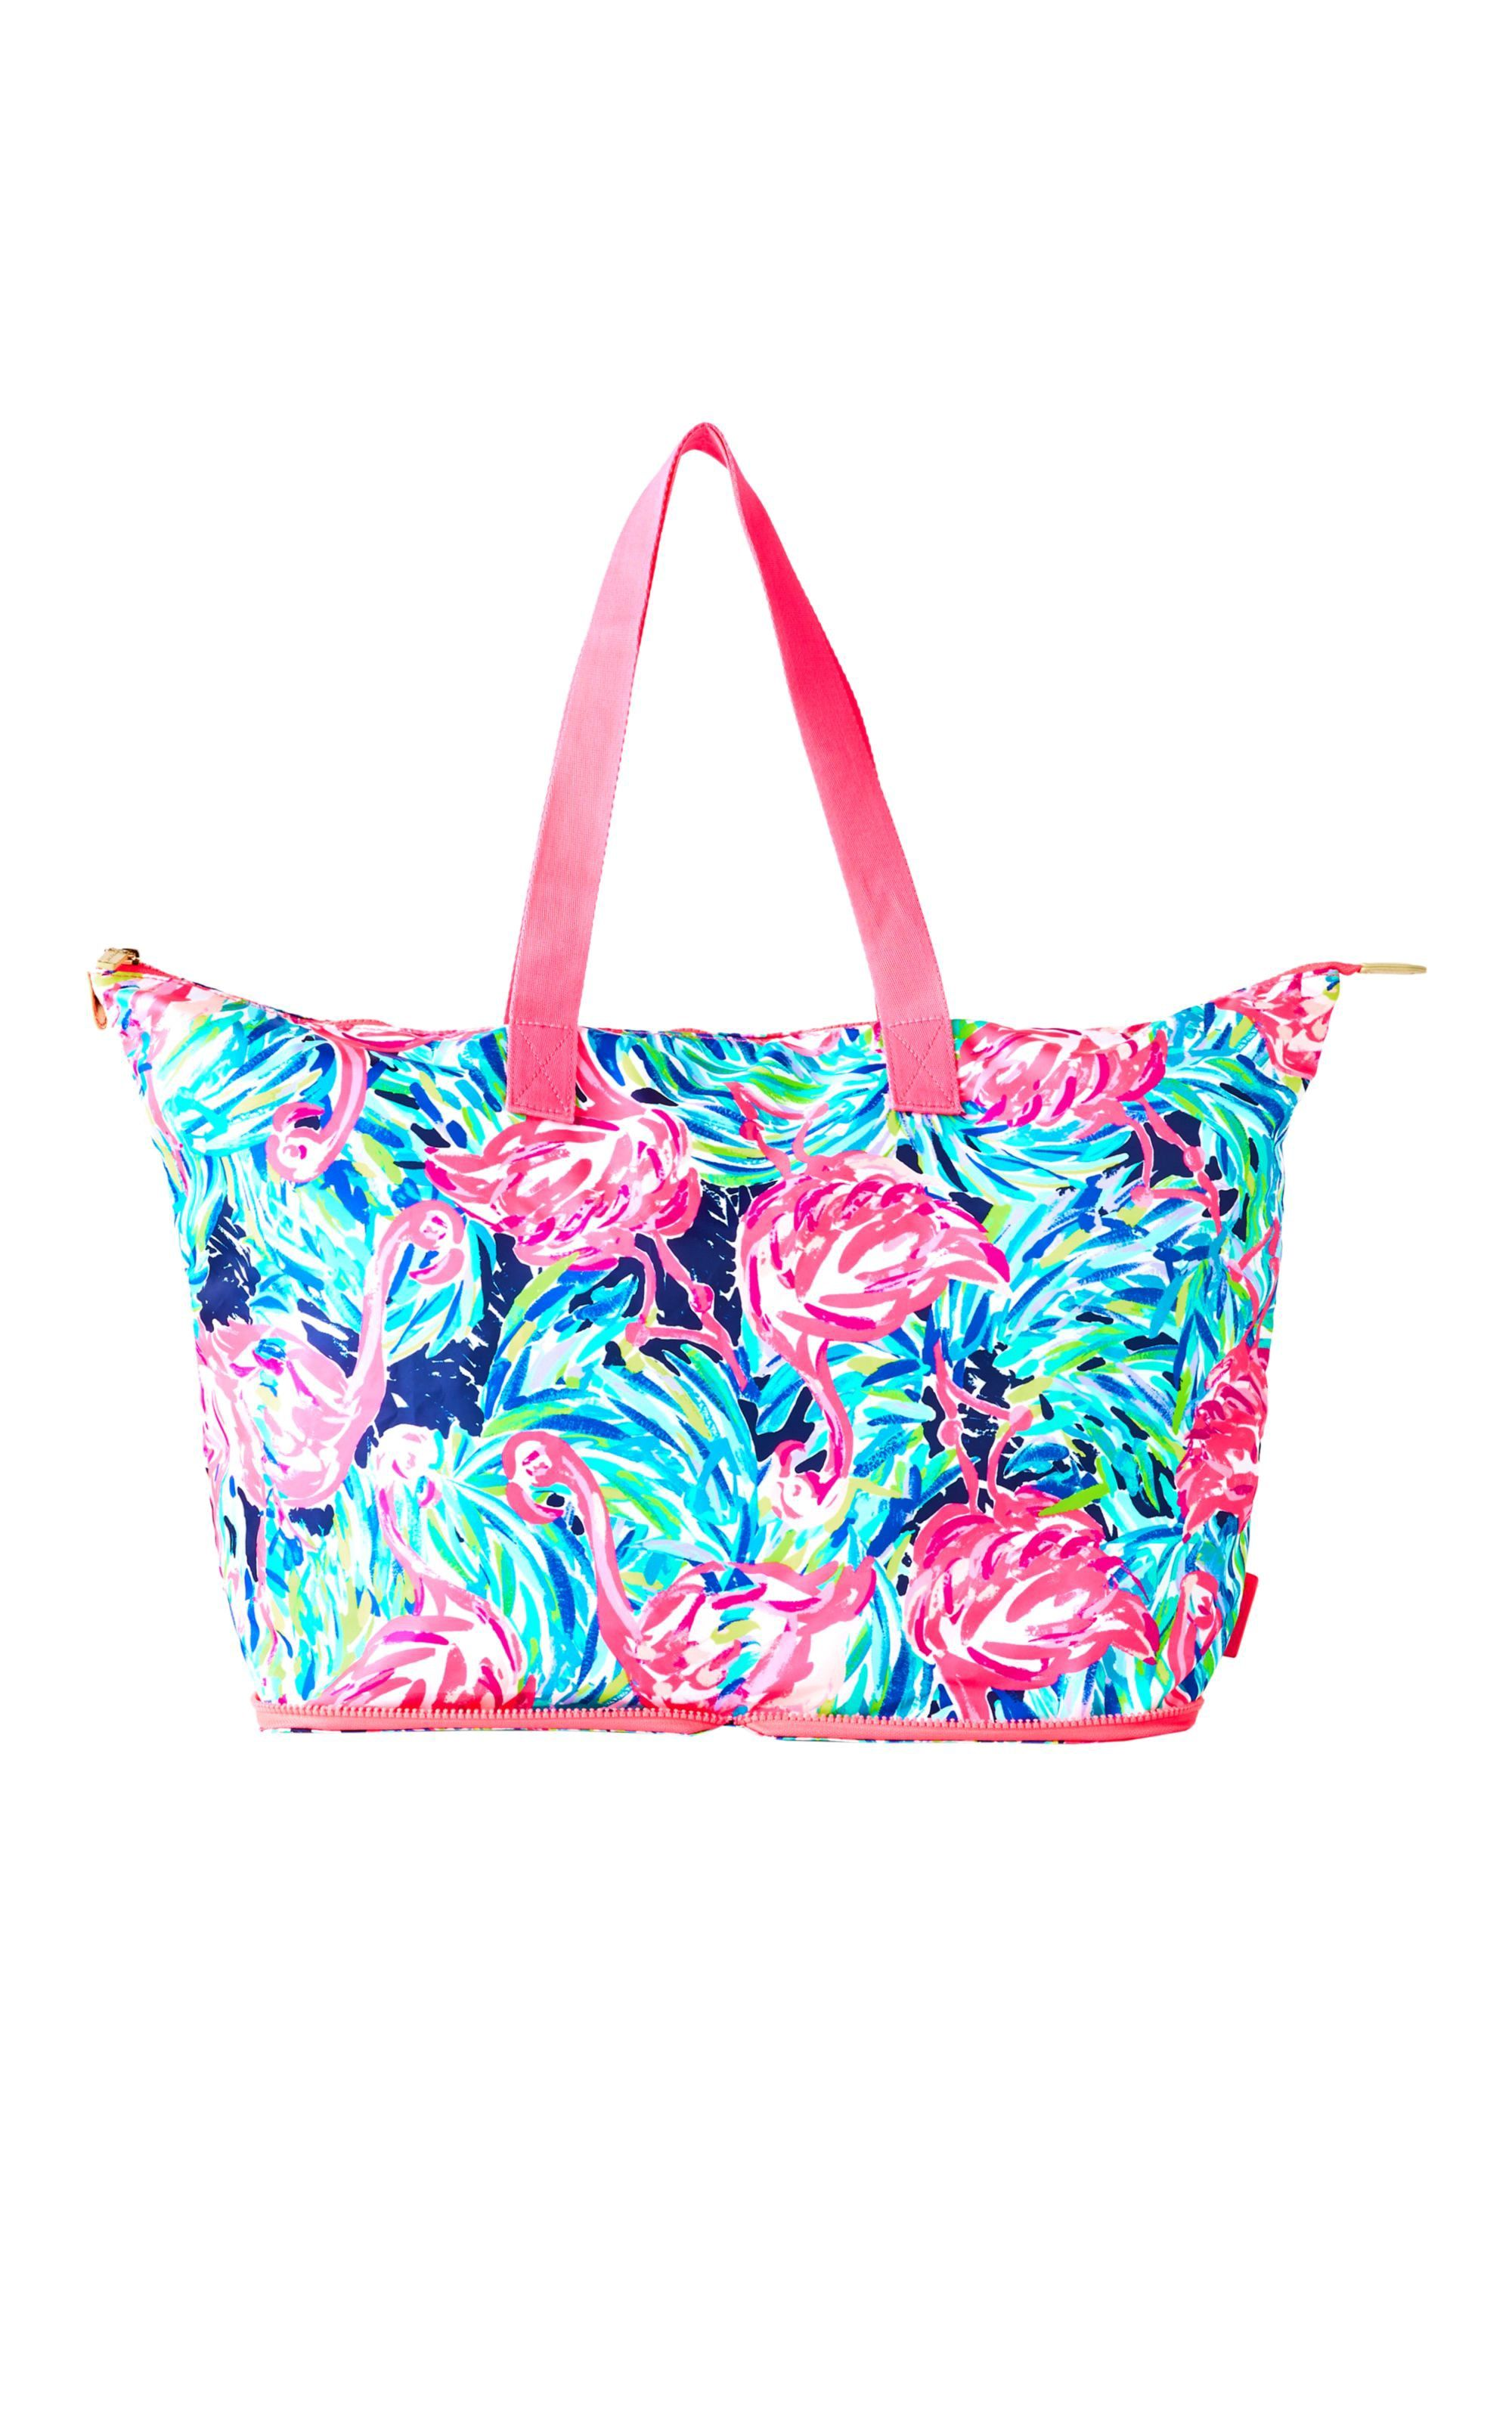 Lilly Pulitzer Getaway Packable Tote Multi Flamenco Beach Lillypulitzer Bags Travel Polyester